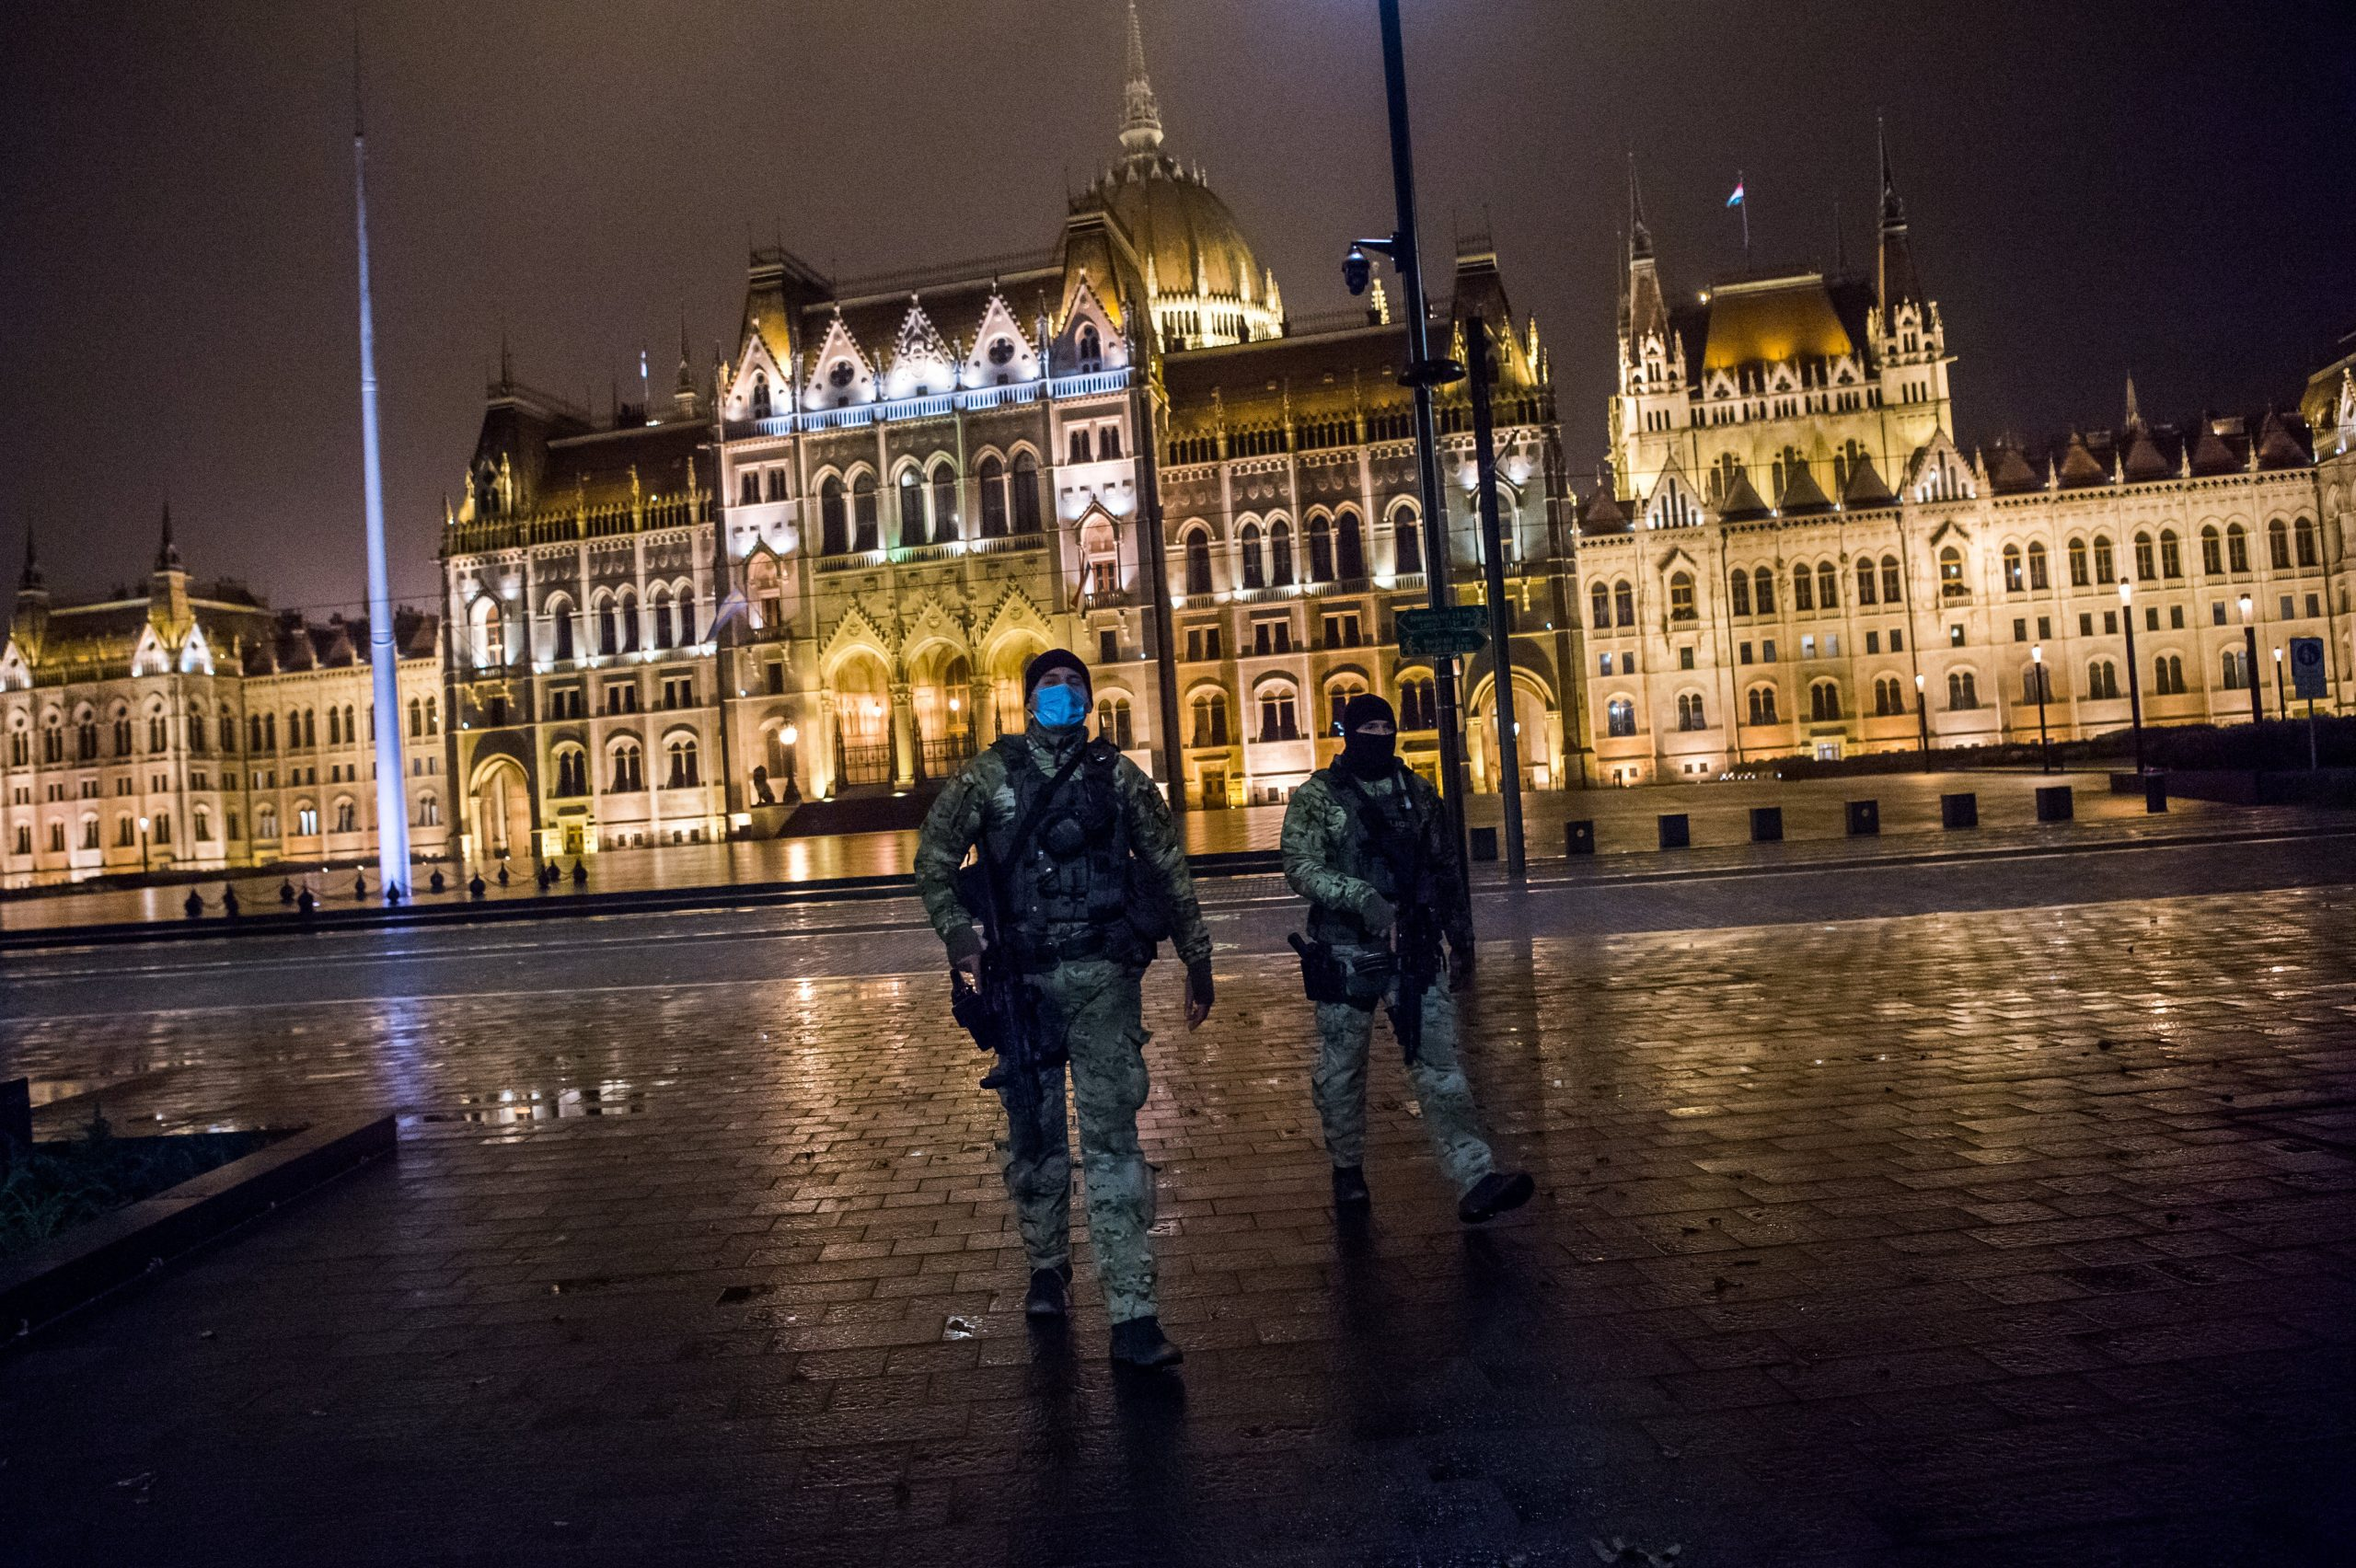 Night Curfew Leaves Budapest Streets Empty - Photo Gallery!